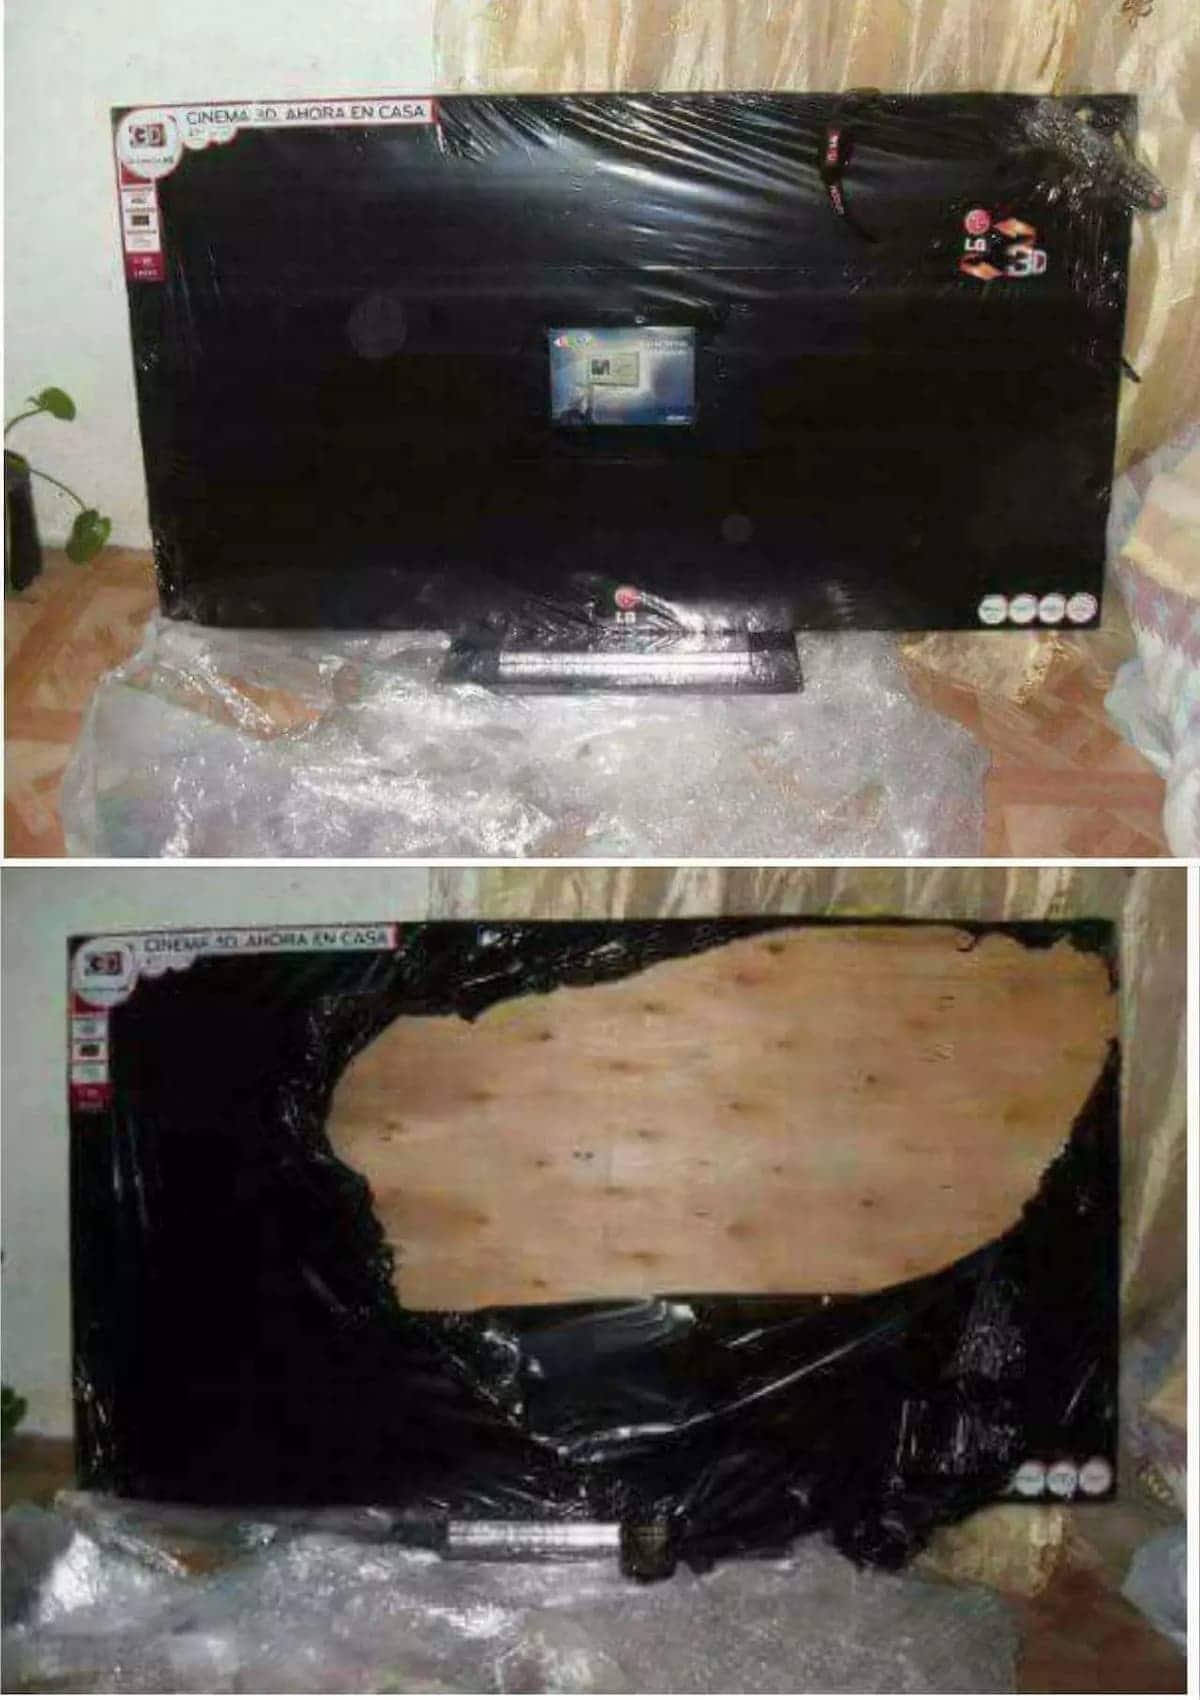 Scammers reportedly sell plywood to unsuspecting victim as flat screen TV